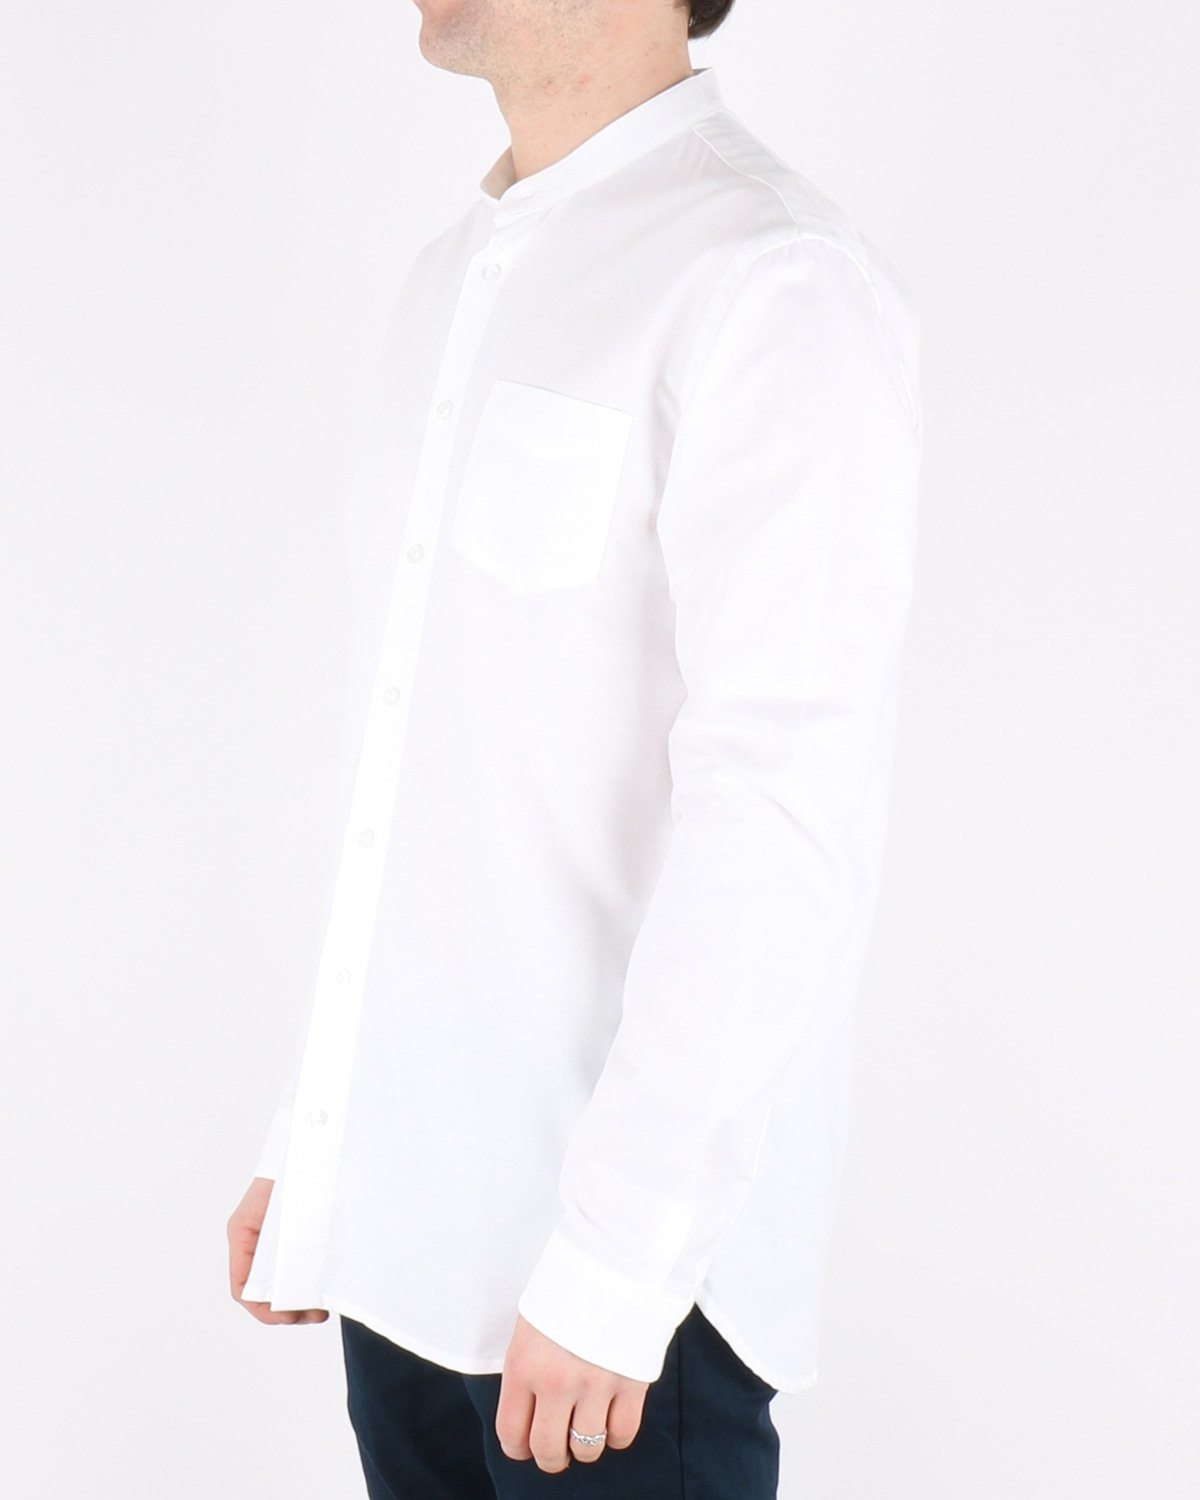 libertine libertine_factory shirt_white_2_4